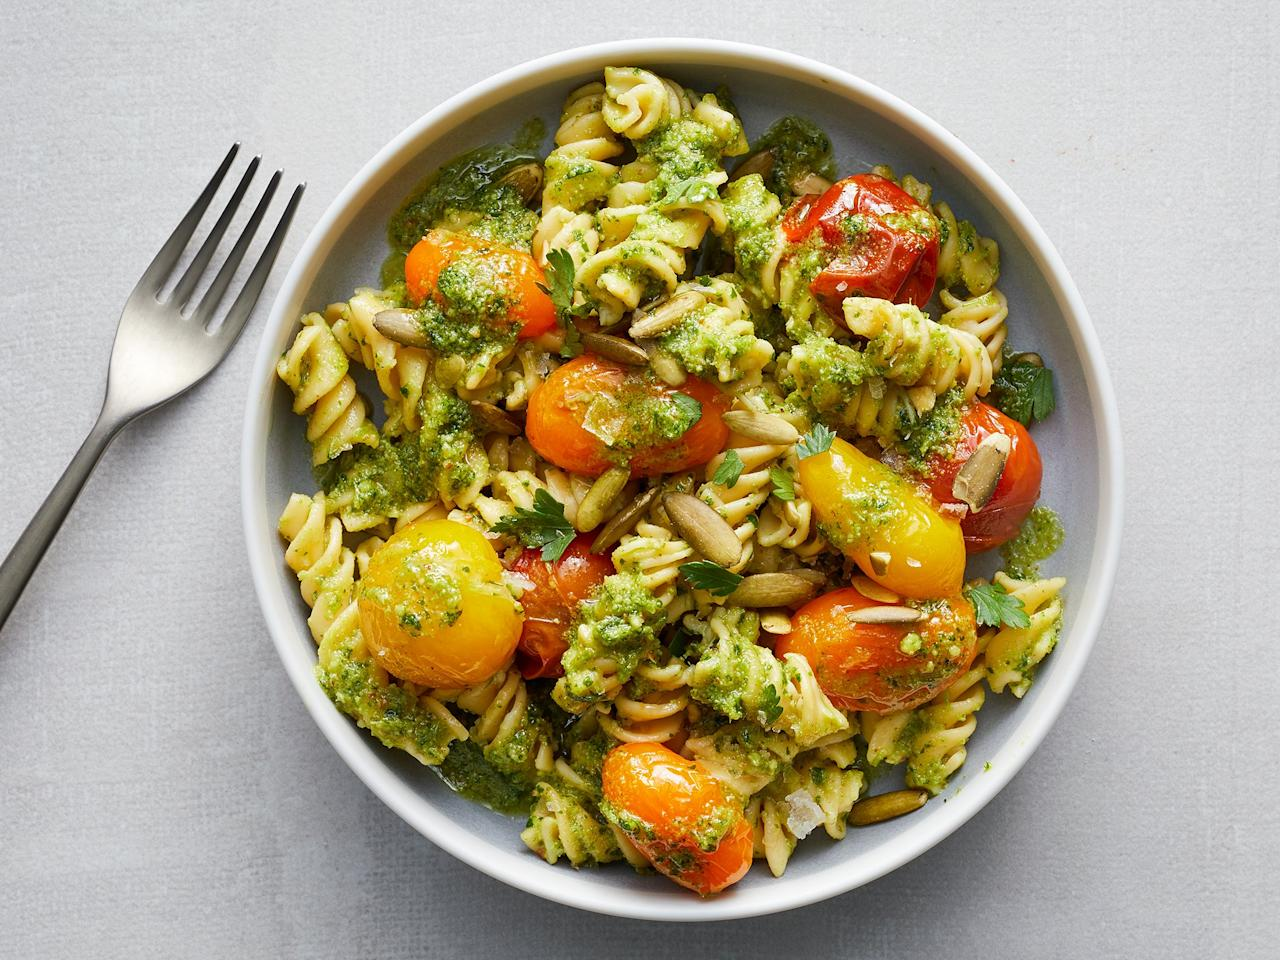 """<p>This fast pasta dish is easy to prep and makes for a nice quick, family-friendly, weeknight dinner. You can top it with chicken to give it a little extra staying power, but it also works well as a lunch salad, or to bring to a potluck as a side dish. We like to use fiber-packed chickpea pasta, but whole wheat is a tasty substitution.</p> <p> <a href=""""https://www.cookinglight.com/recipes/pesto-pasta-salad"""">View Recipe: Pesto Pasta Salad</a></p>"""